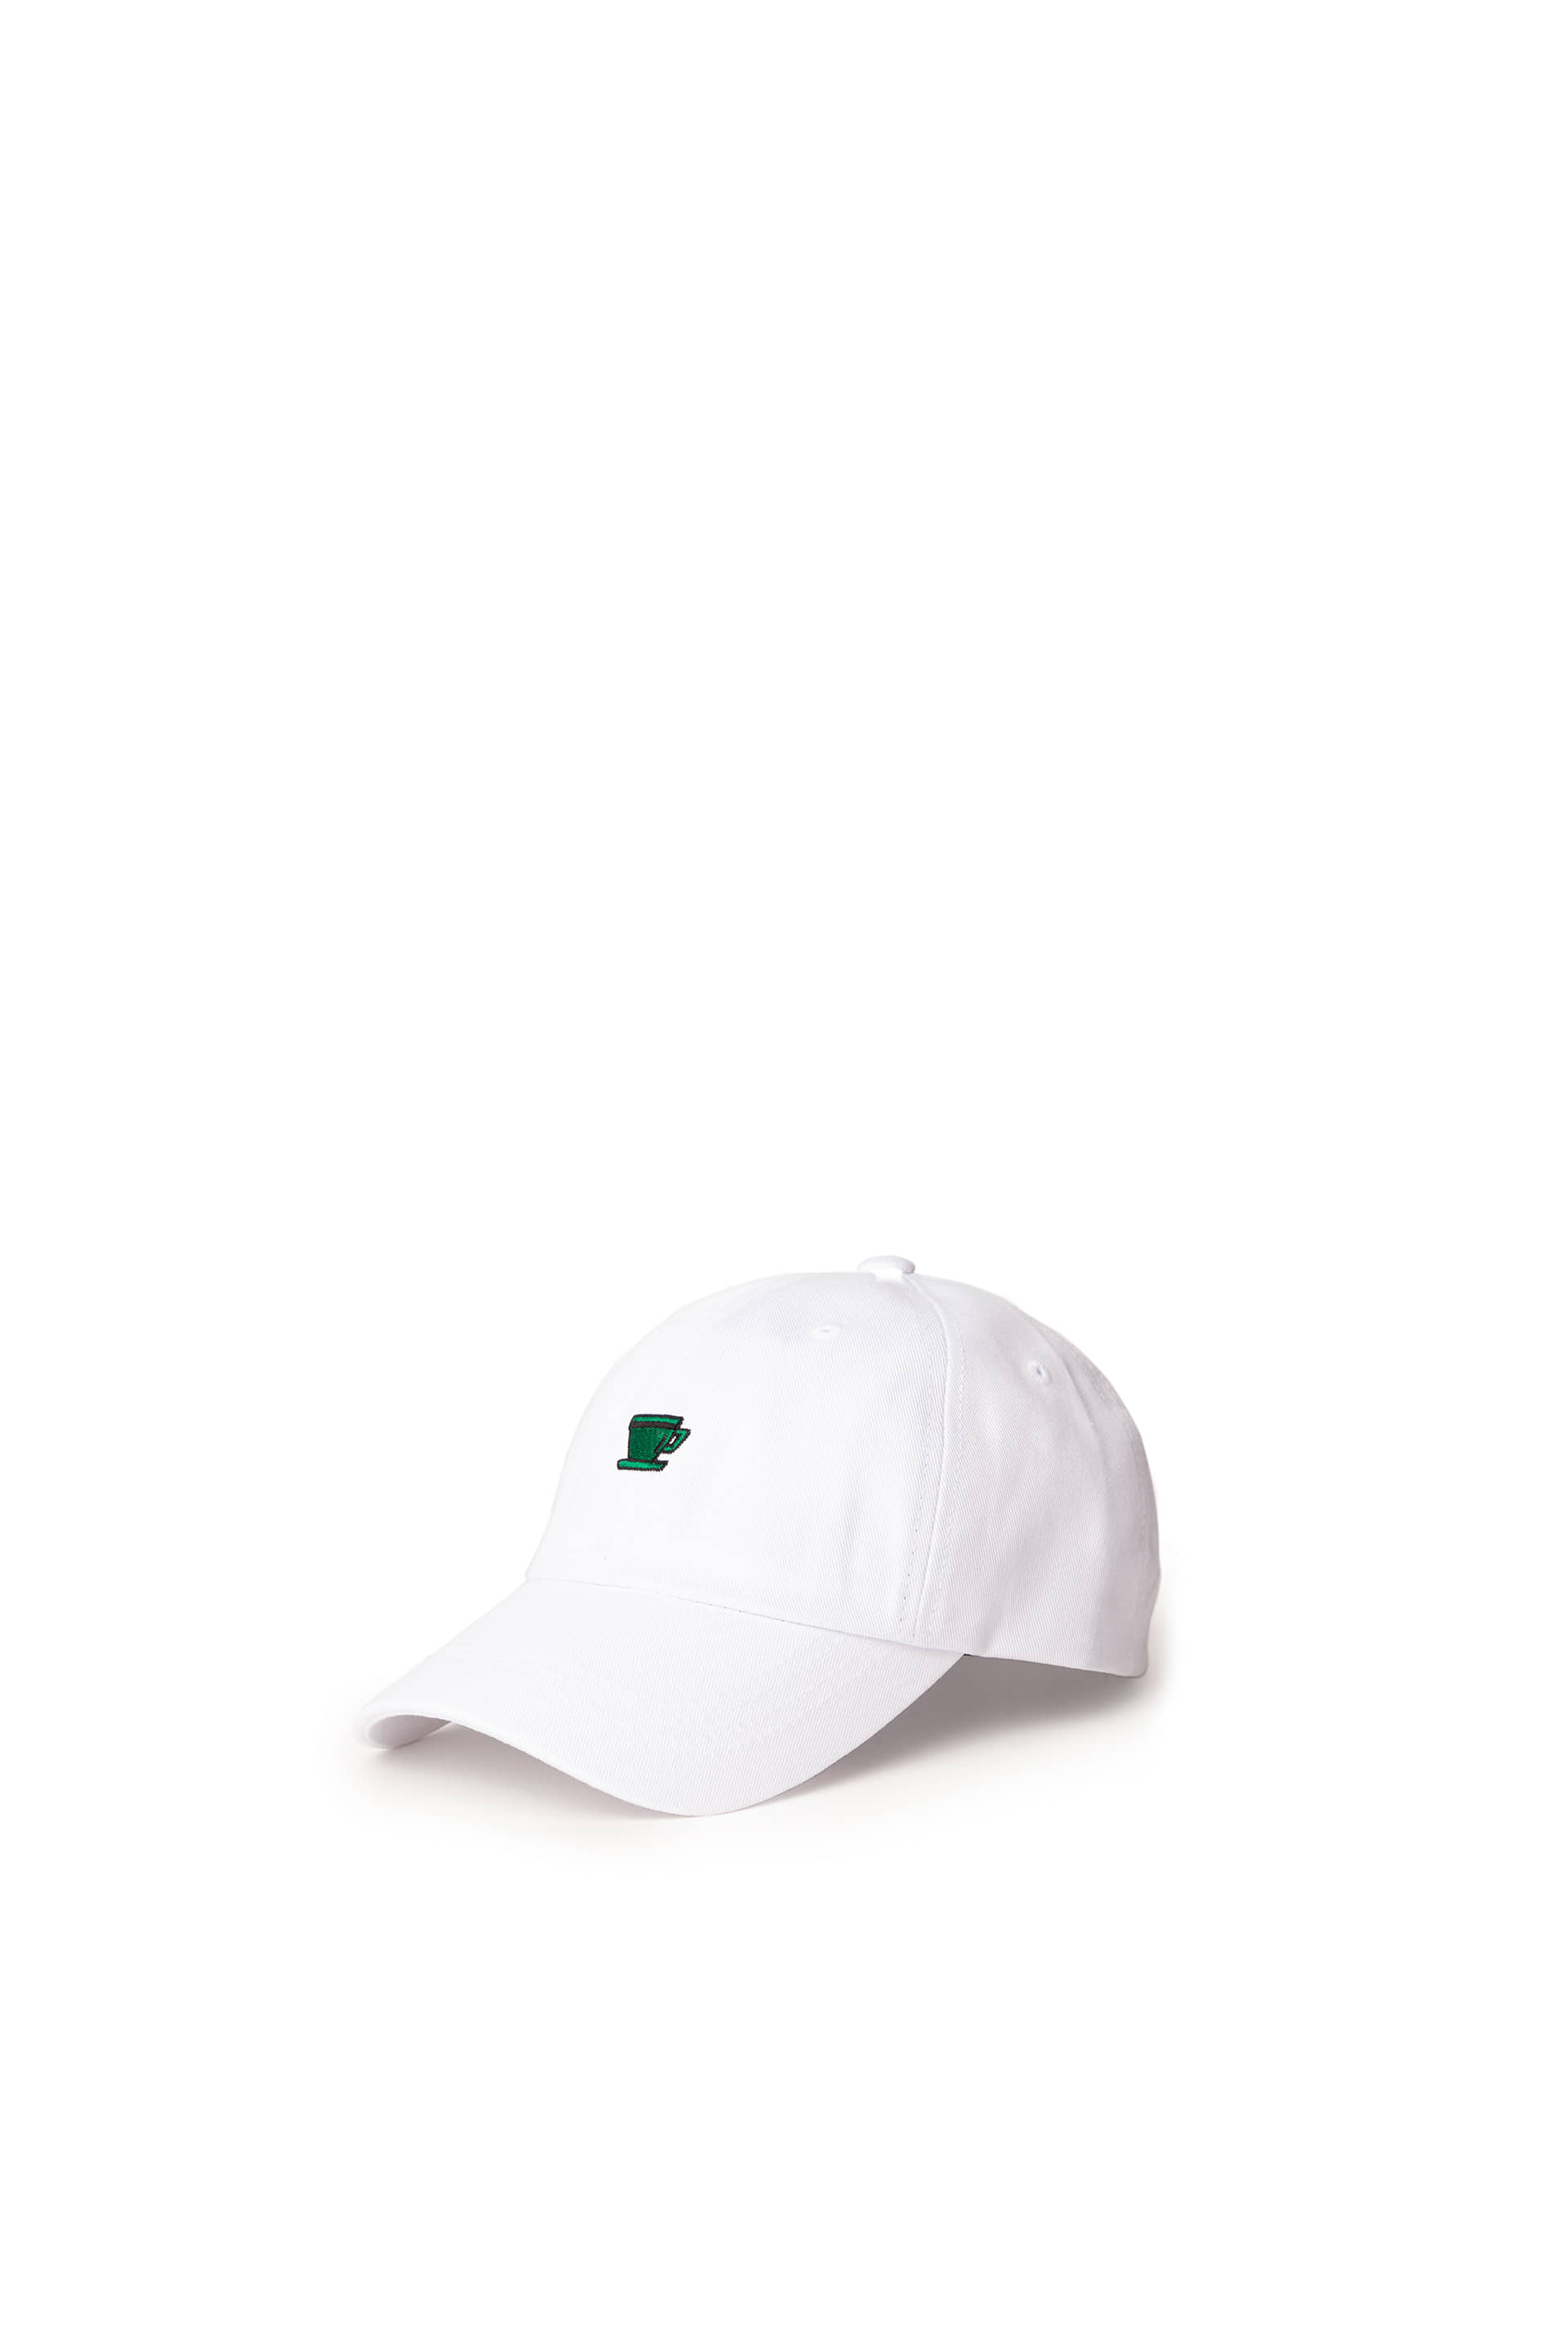 BALL CAP WHITE